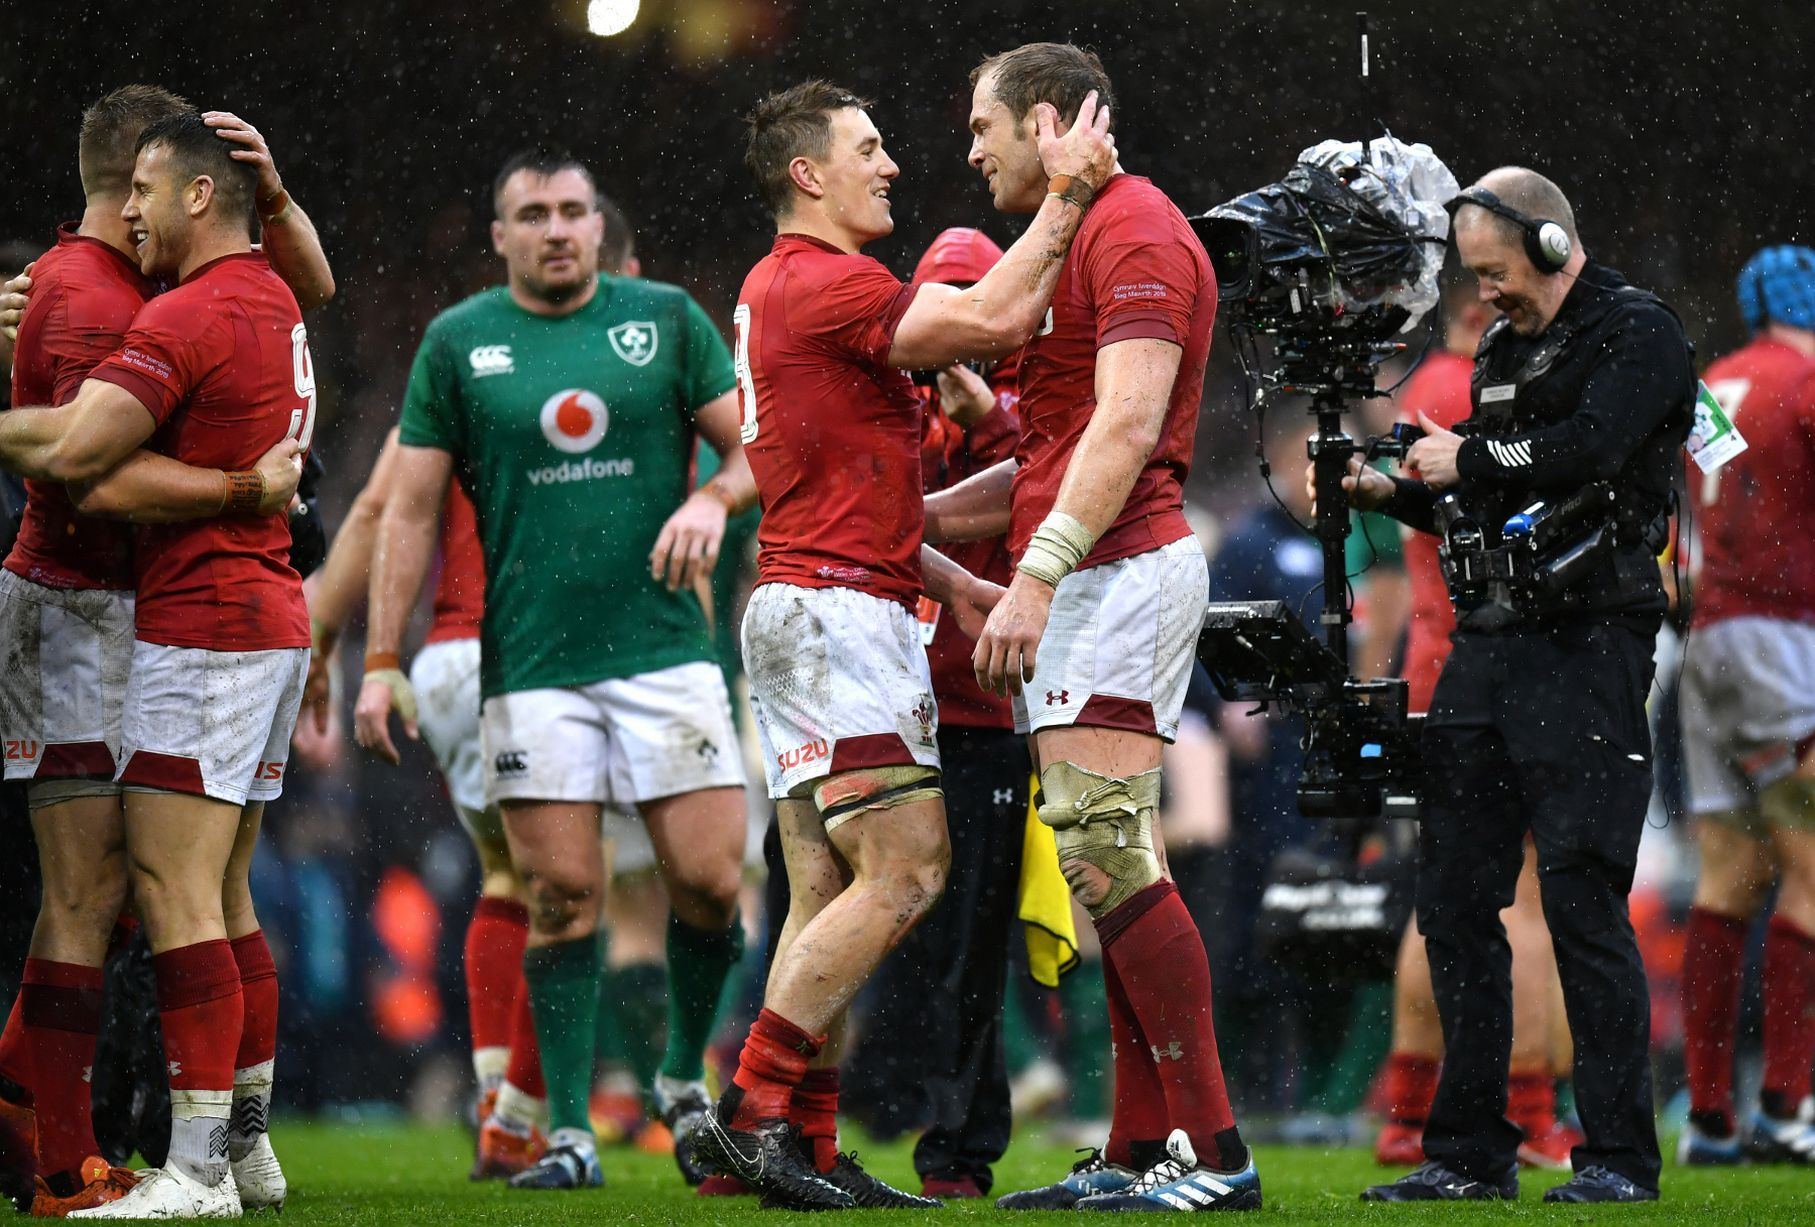 The Best Pictures From Wales Unforgettable Grand Slam Weekend Welsh Rugby Wales Rugby Rugby News Welsh Rugby